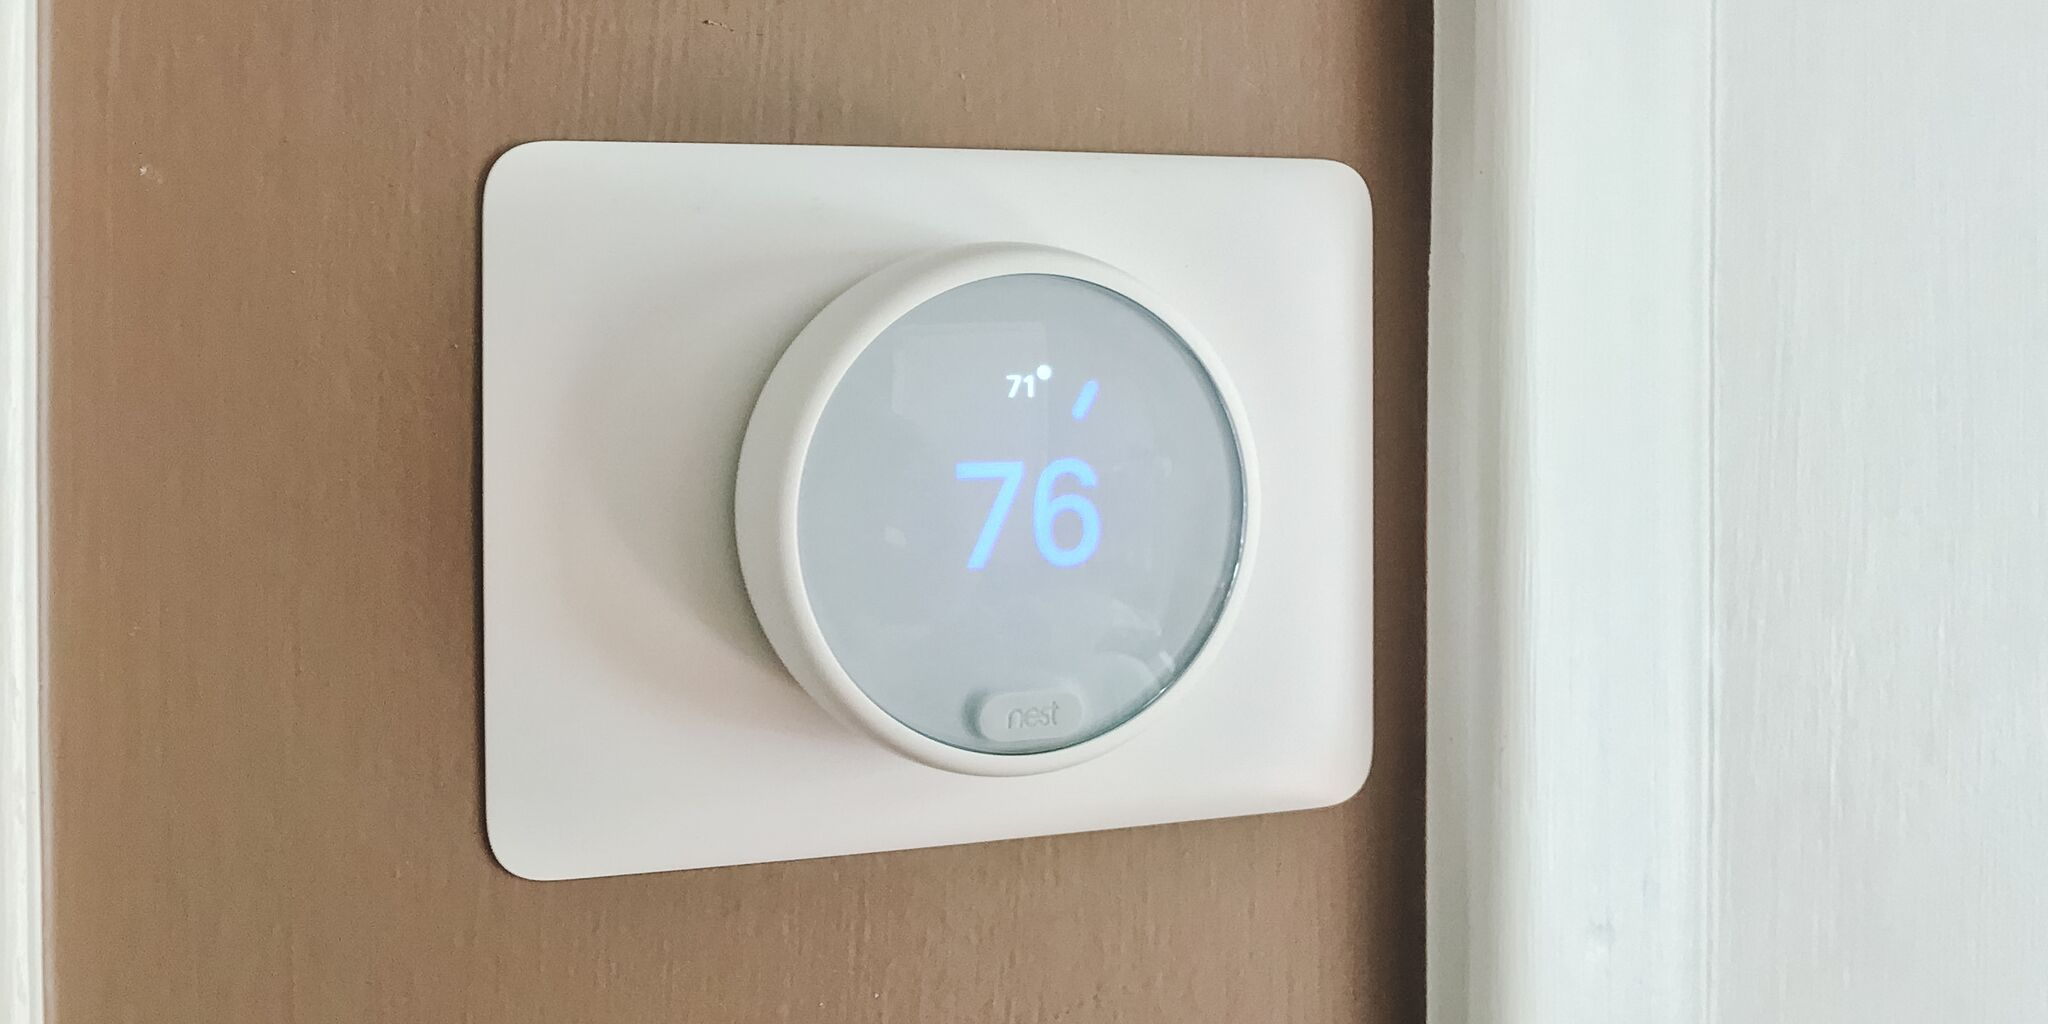 Everyday home gear made smart Nest smart thermostat